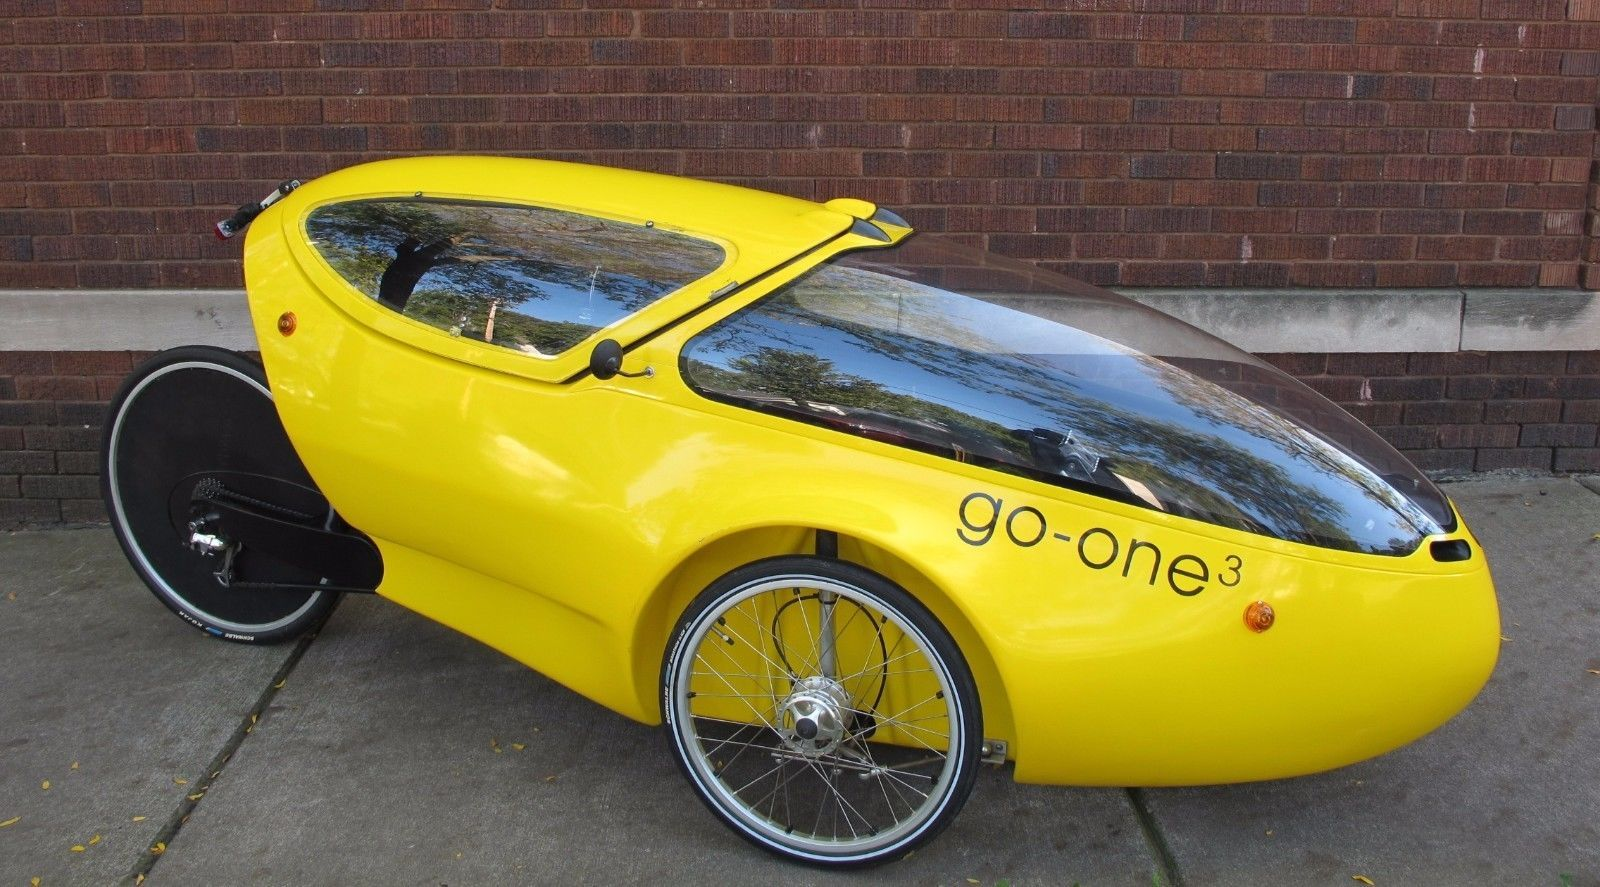 Go One 3 Velomobile Human Powered Vehicle Recumbent Trike Hpv